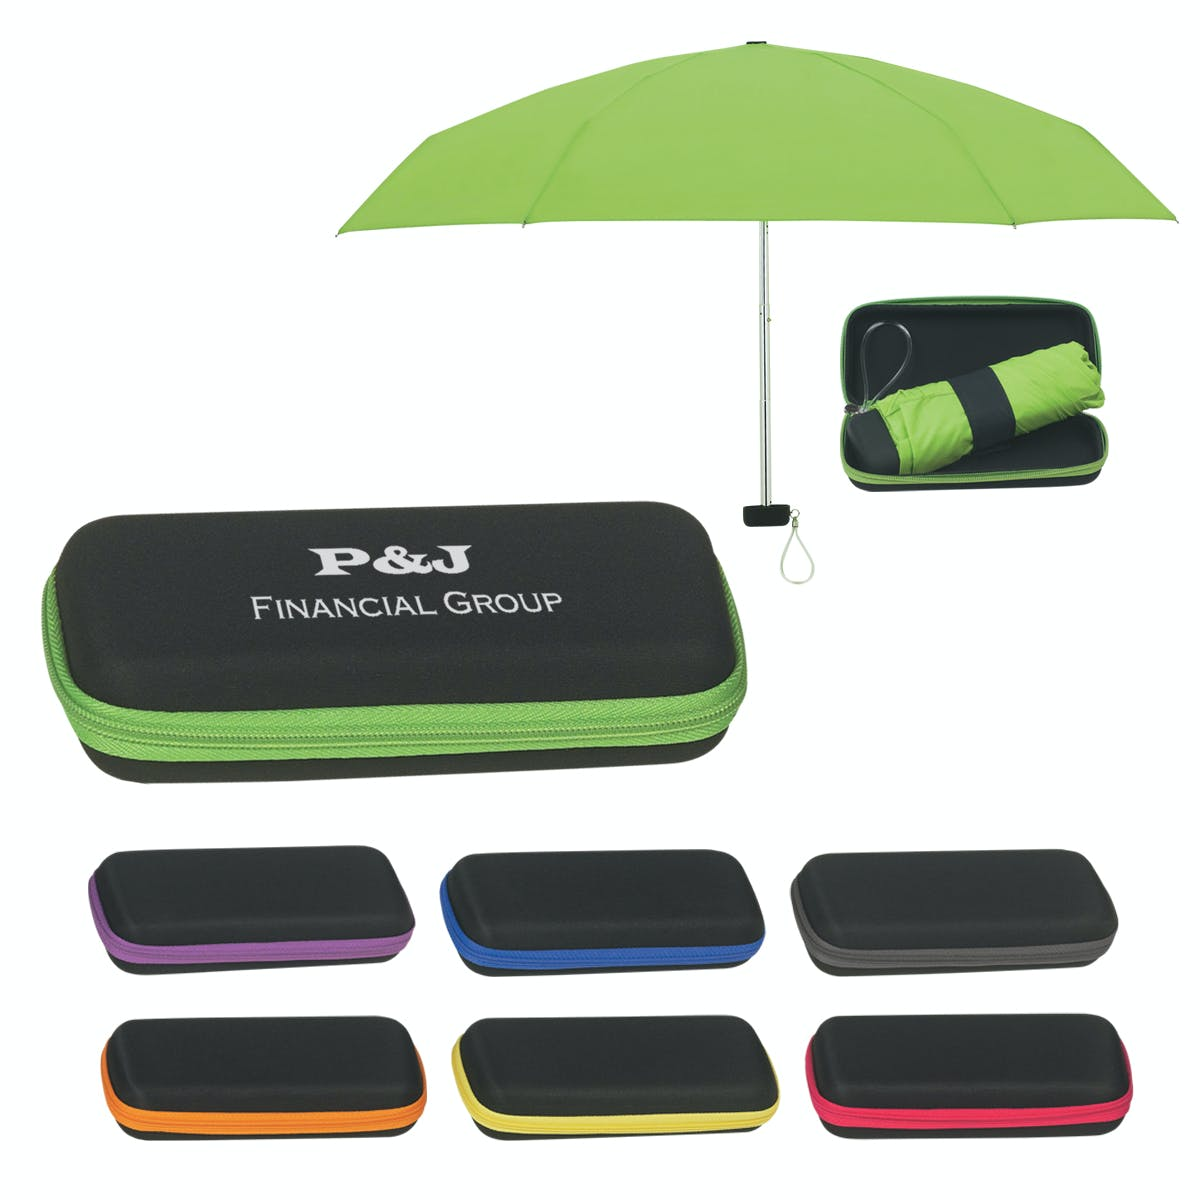 Folding Travel Umbrella with Case (Item # OEEOM-GHAFD) Umbrella sold by InkEasy